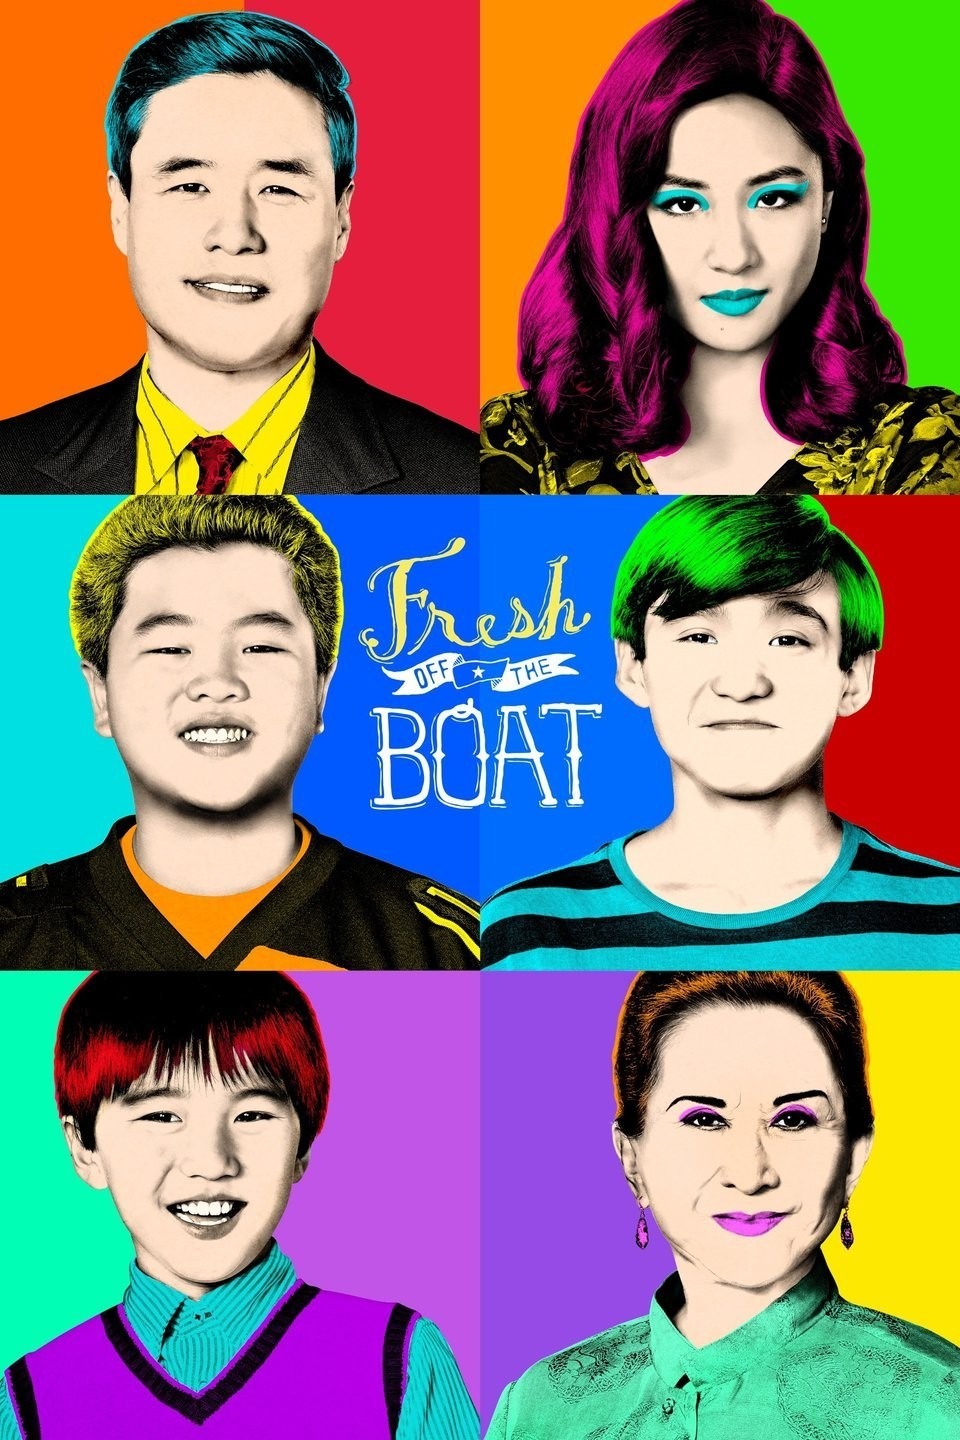 Fresh off the Boat Season 4 初来乍到 第四季